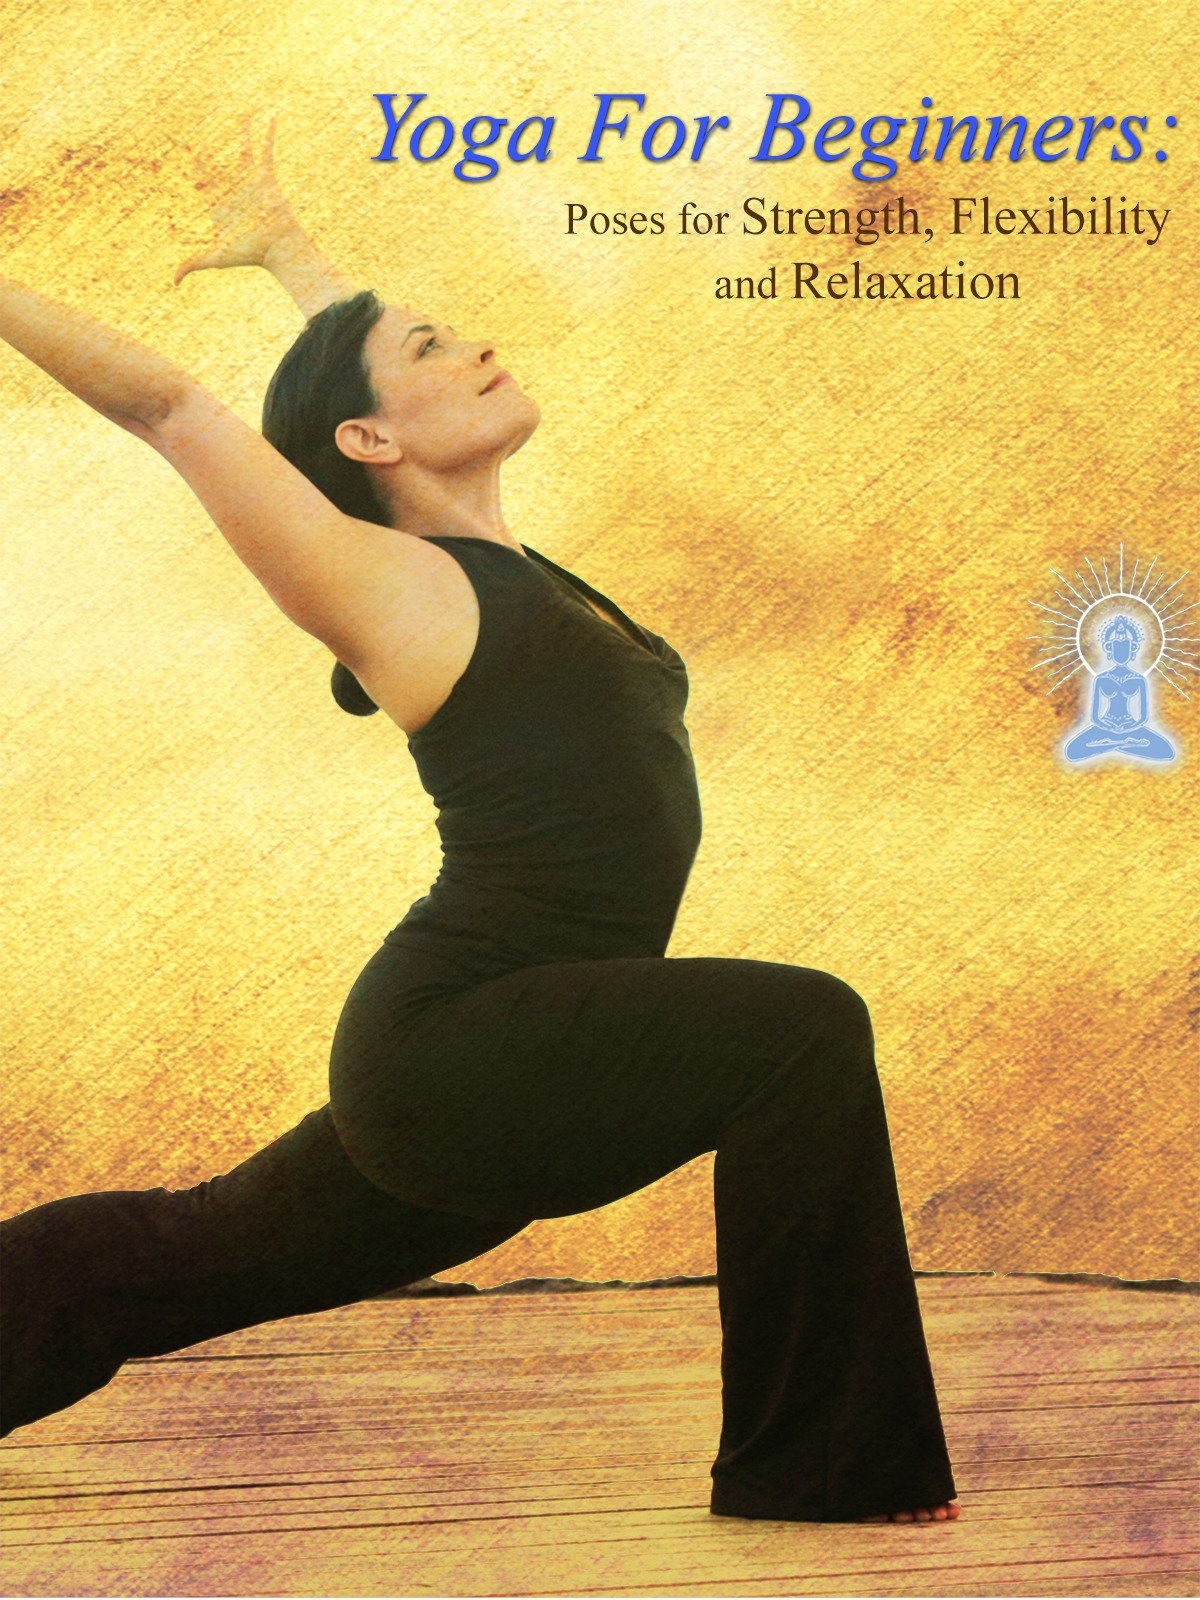 Yoga For Beginners: Poses for Strength, Flexibility and Relaxation by